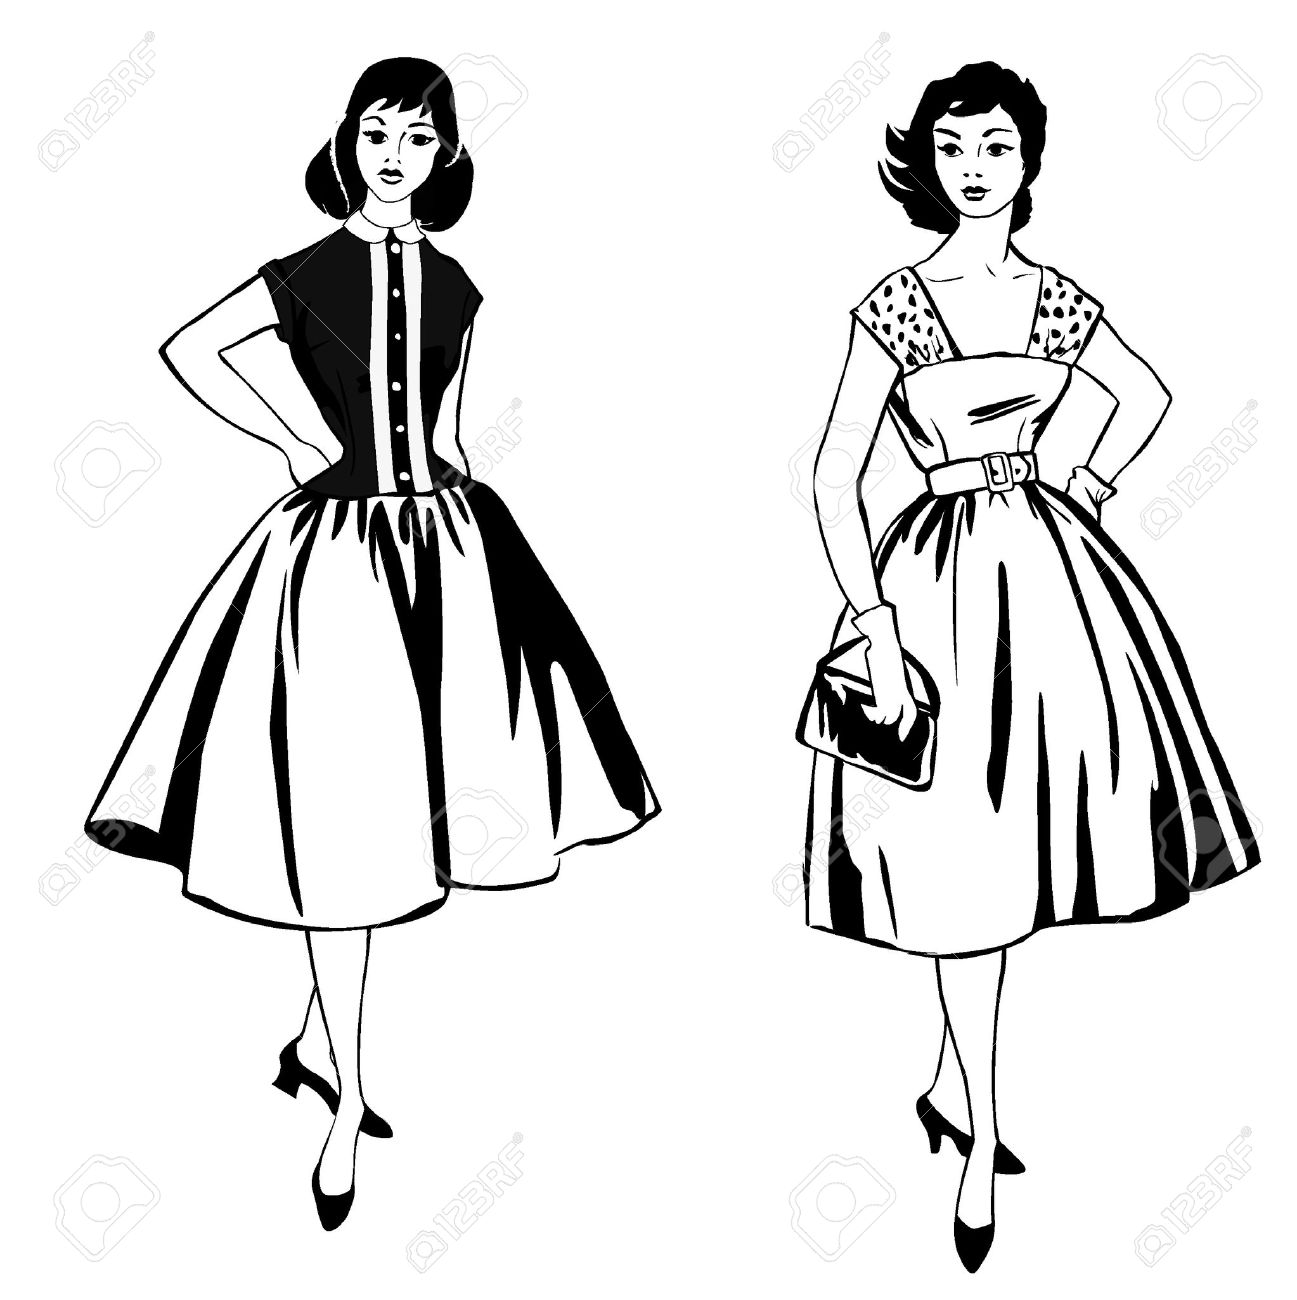 Stylish fashion dressed girls  1950 s 1960 s style   Retro fashion party  vintage fashion silhouettes from 60s Stock Vector - 16423850